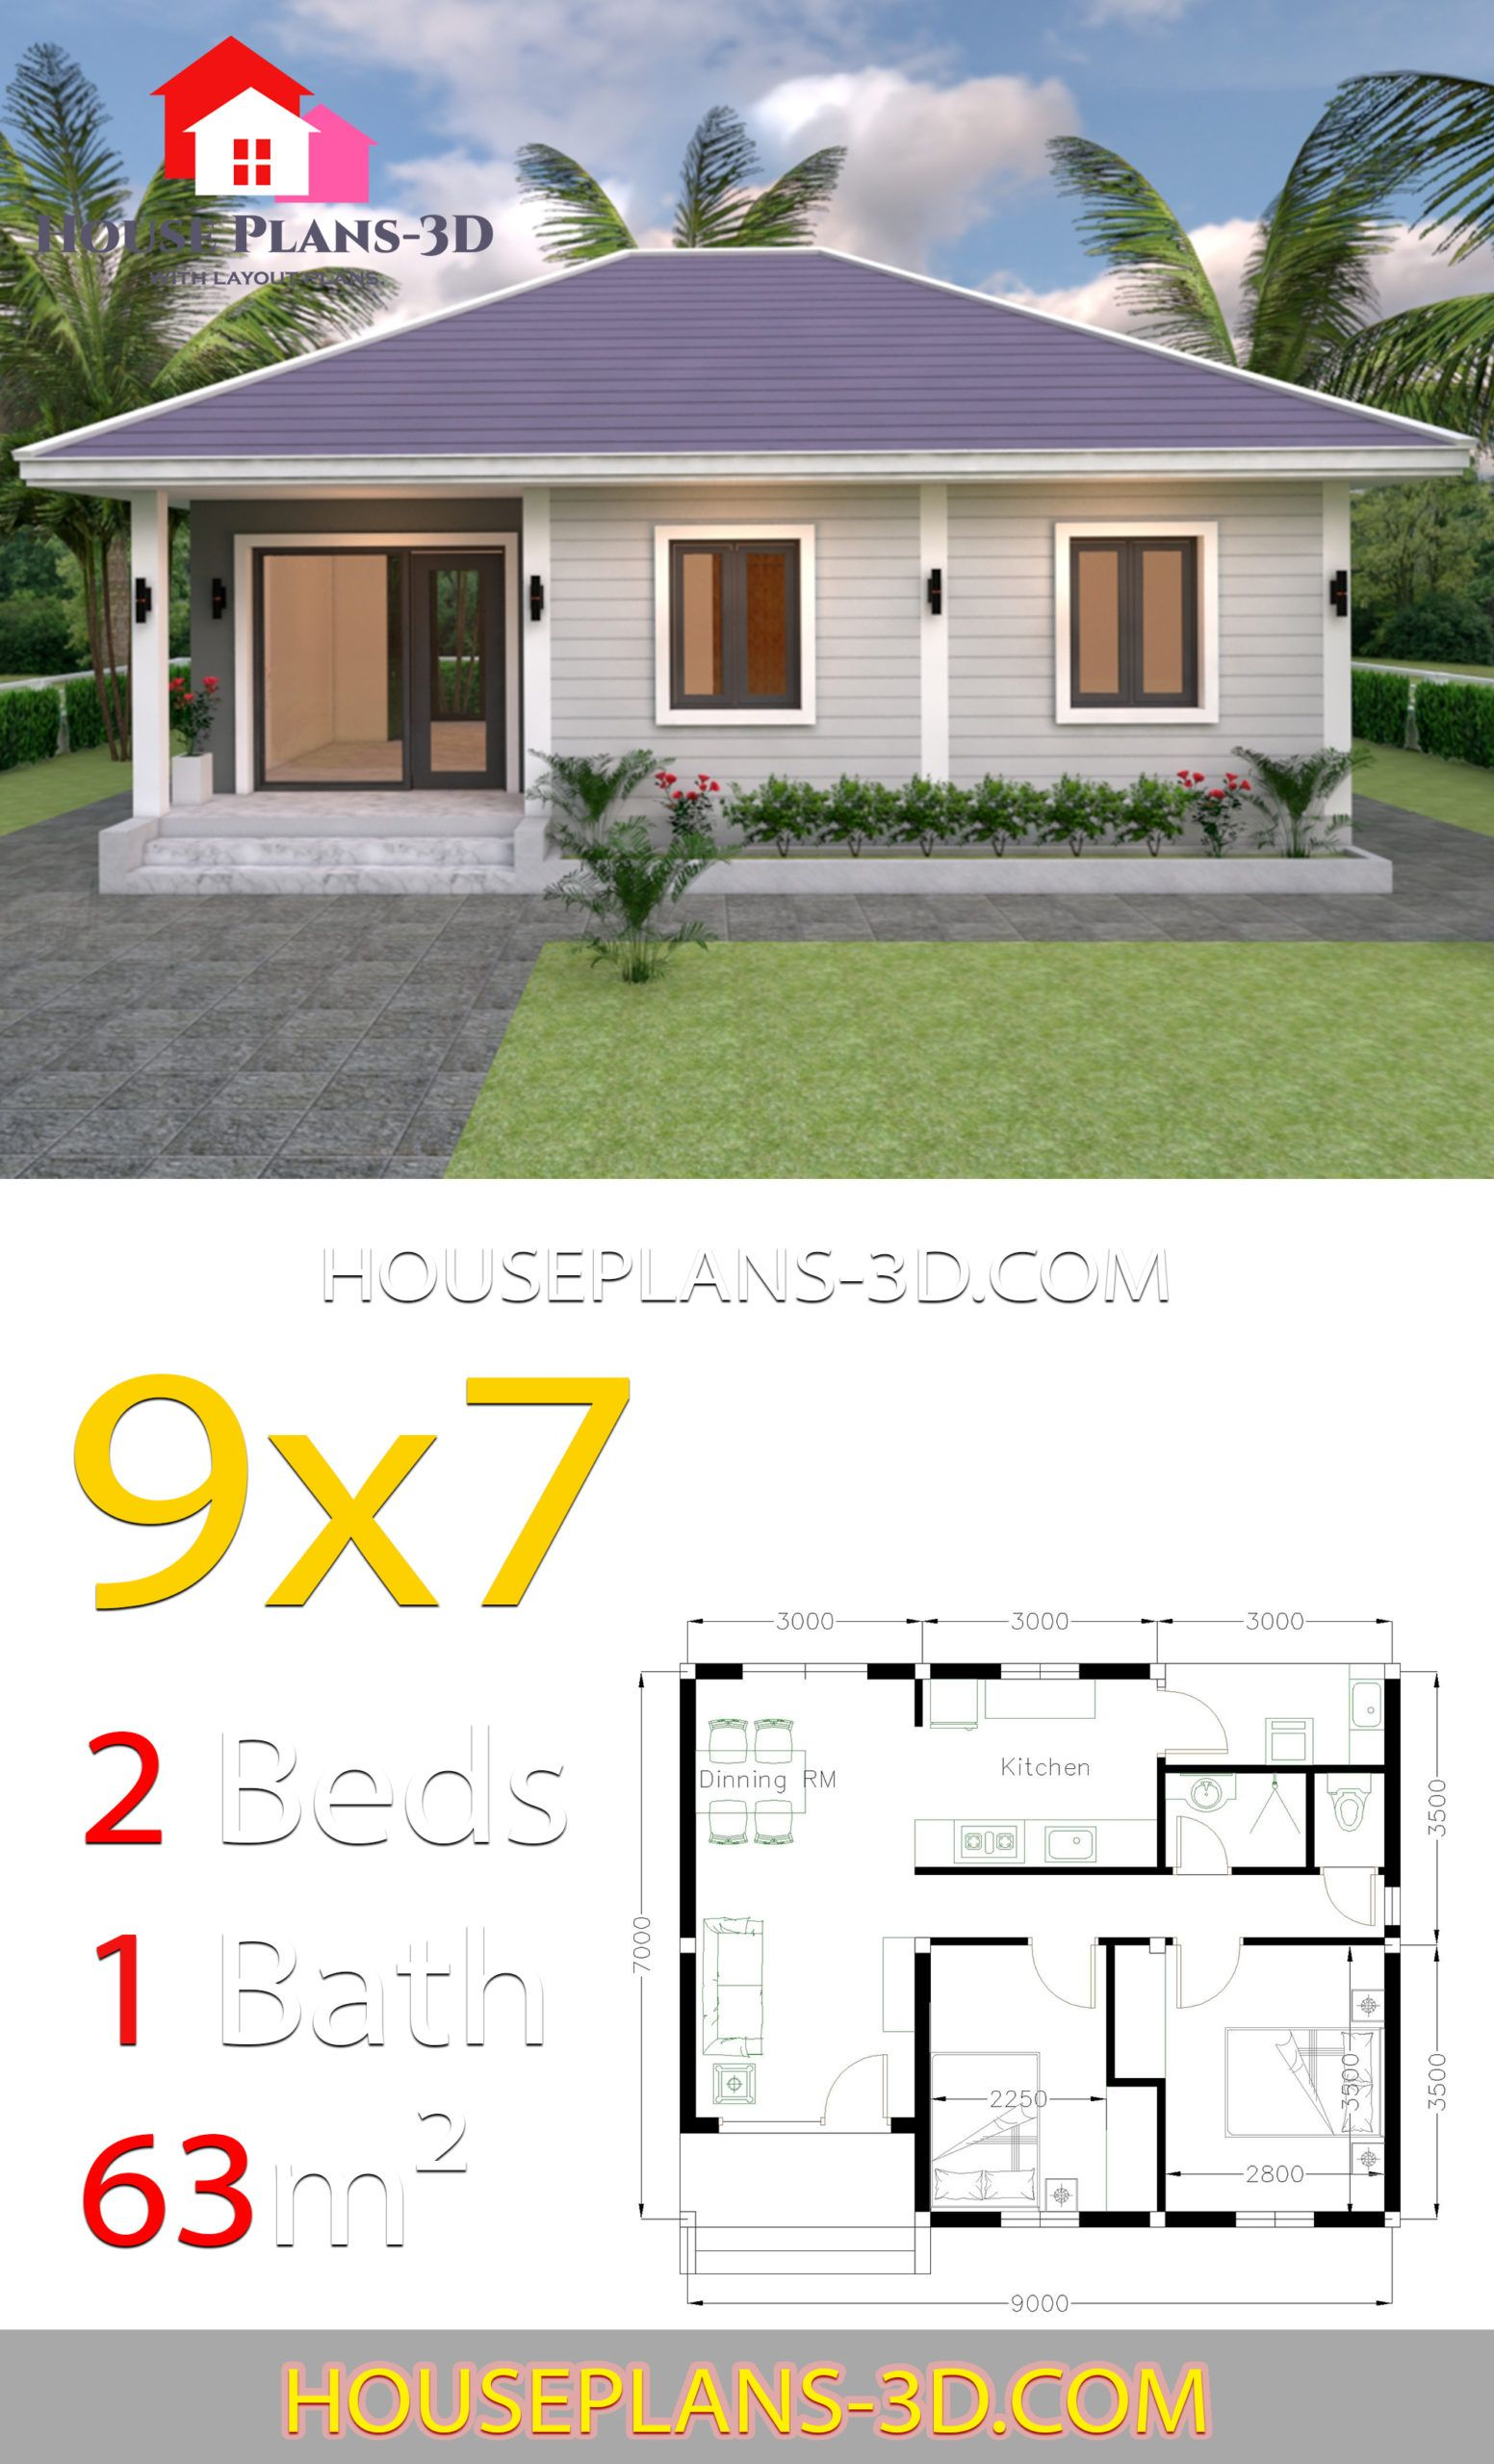 House Plans 9x7 With 2 Bedrooms Hip Roof House Plans 3d House Plans House Roof Modern Style House Plans